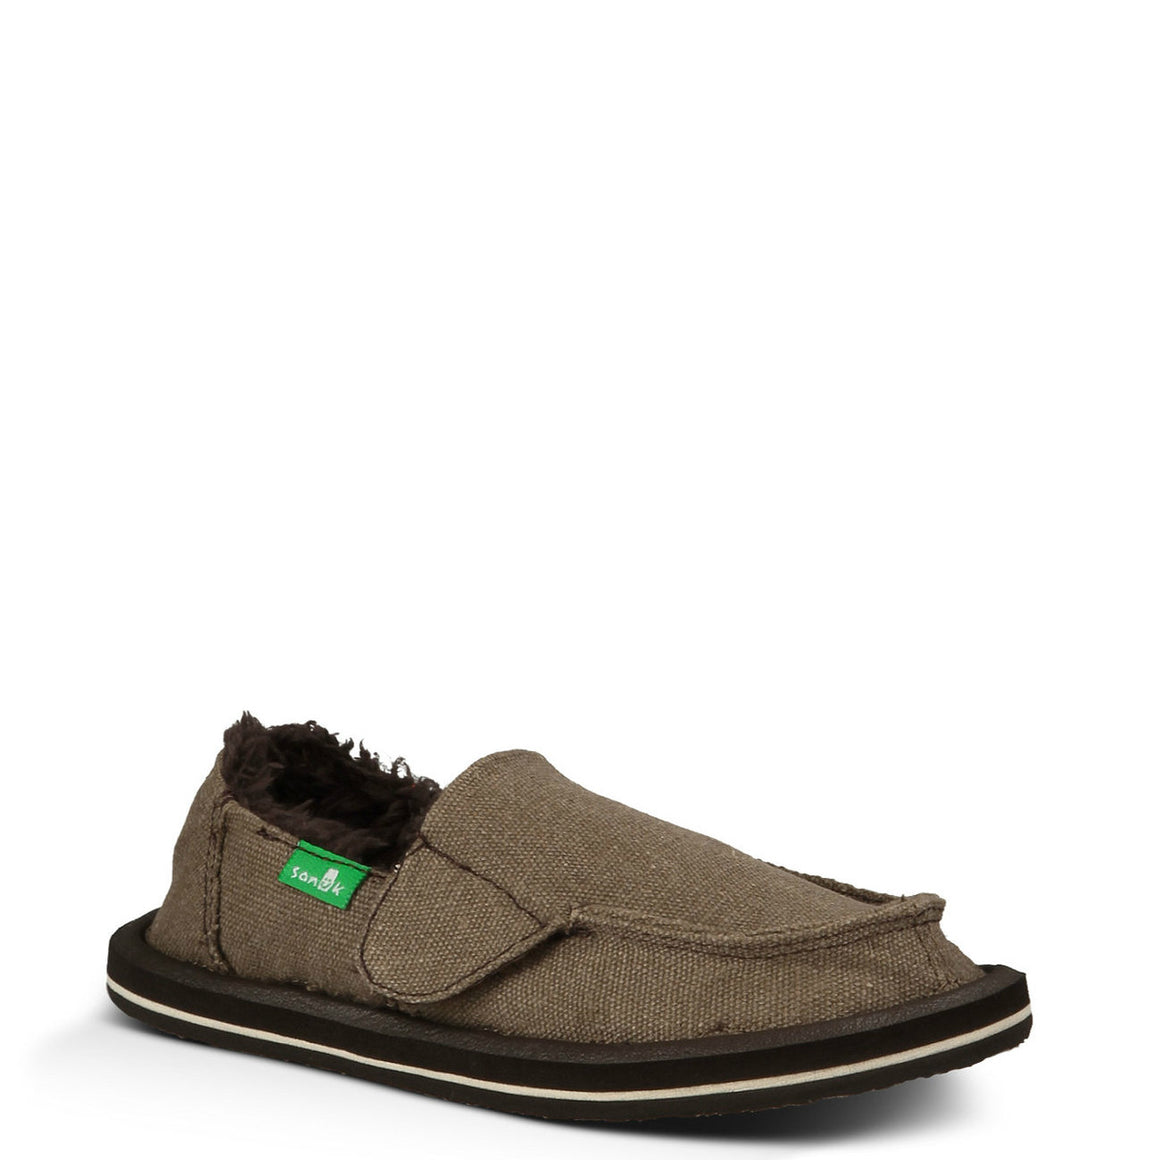 Sanuk Kid's Vagabond Chill - Brown SBF10462K